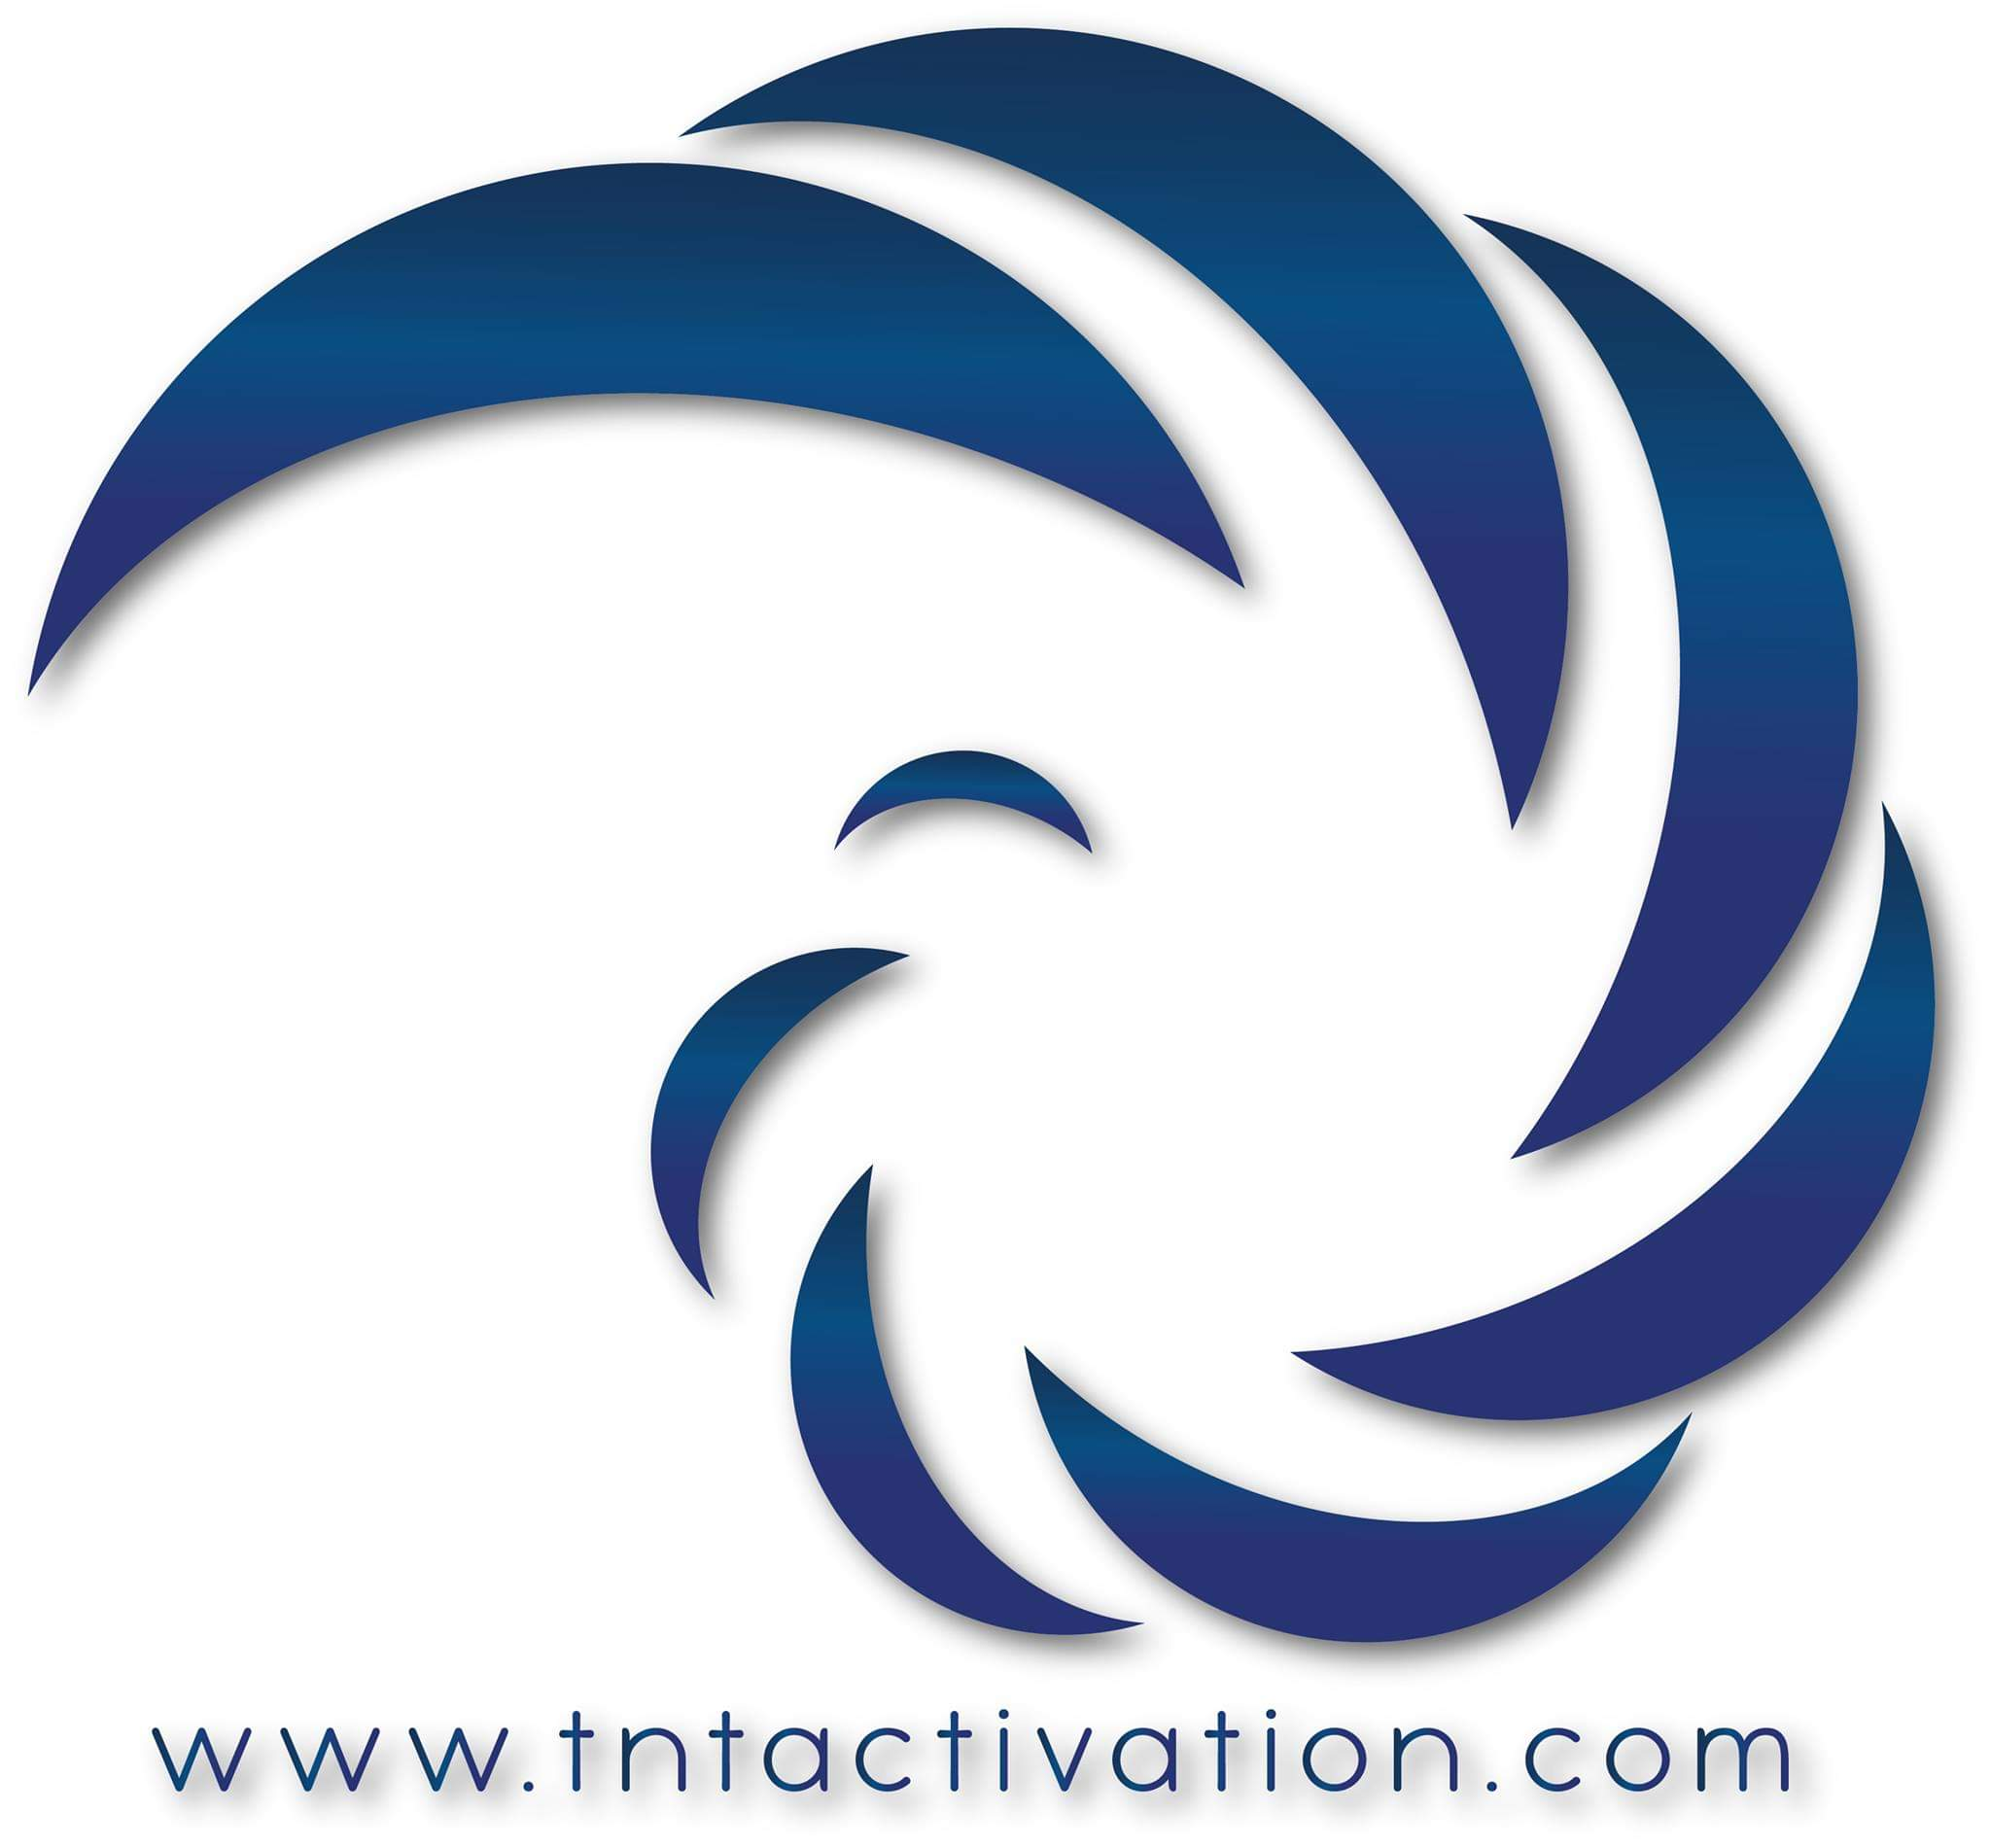 event-marketing-manager-ahmedabad-TNT-activation-1years-2years-full-time